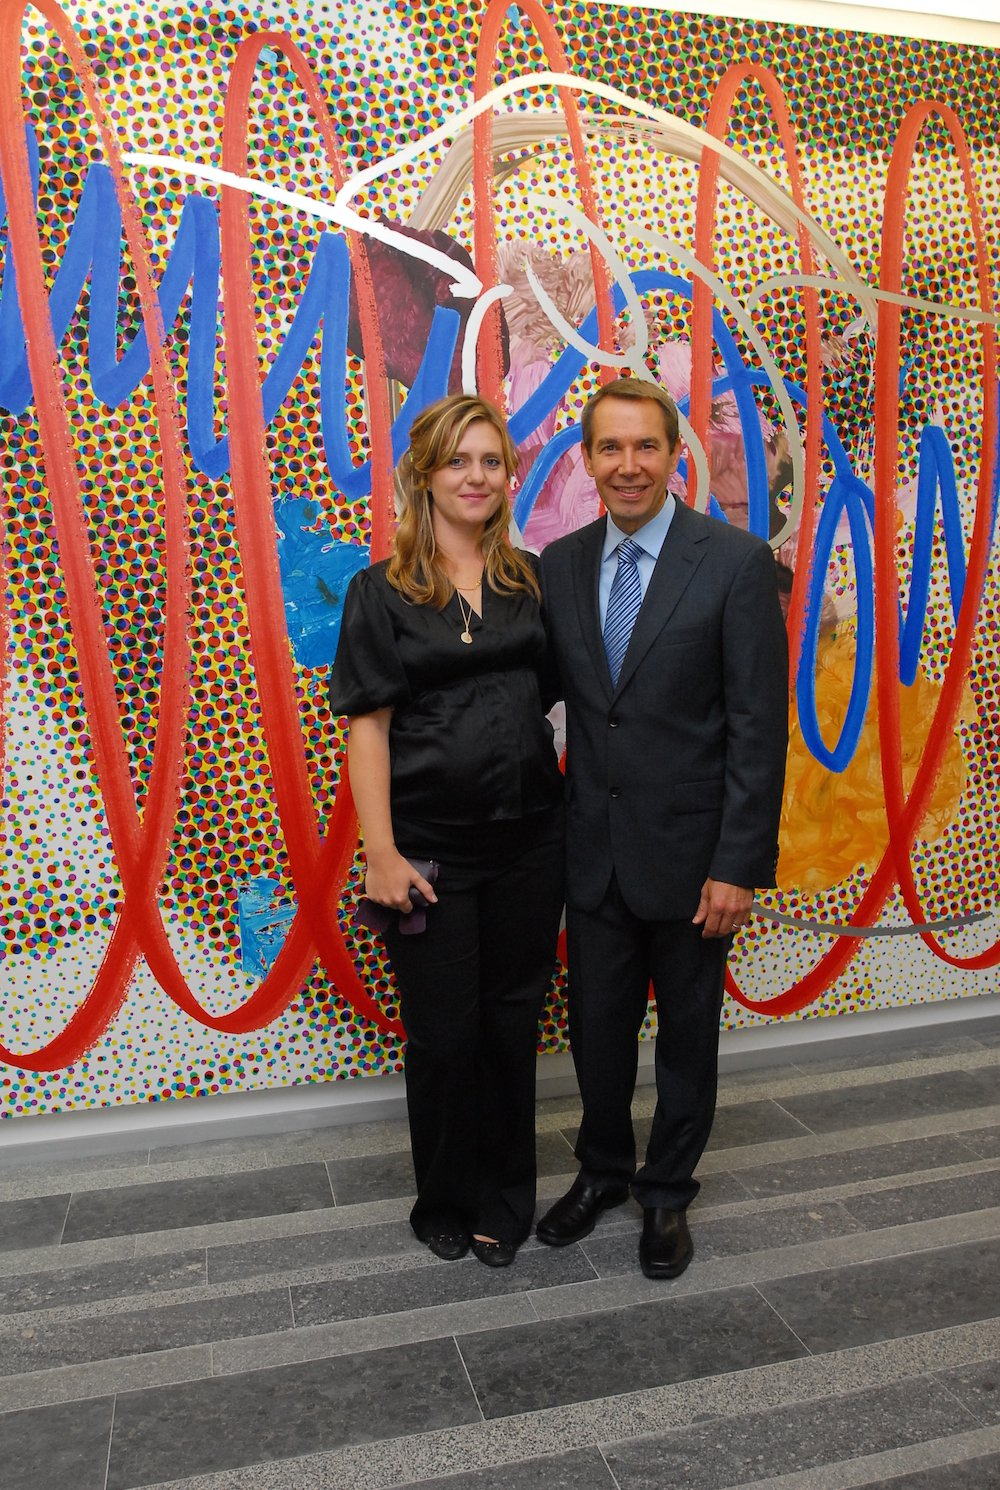 Jeff Koons and Justine Wheeler Koons at the Pinchuk Art Centre. Image: Pinchuk Art Centre/Sergei Illin